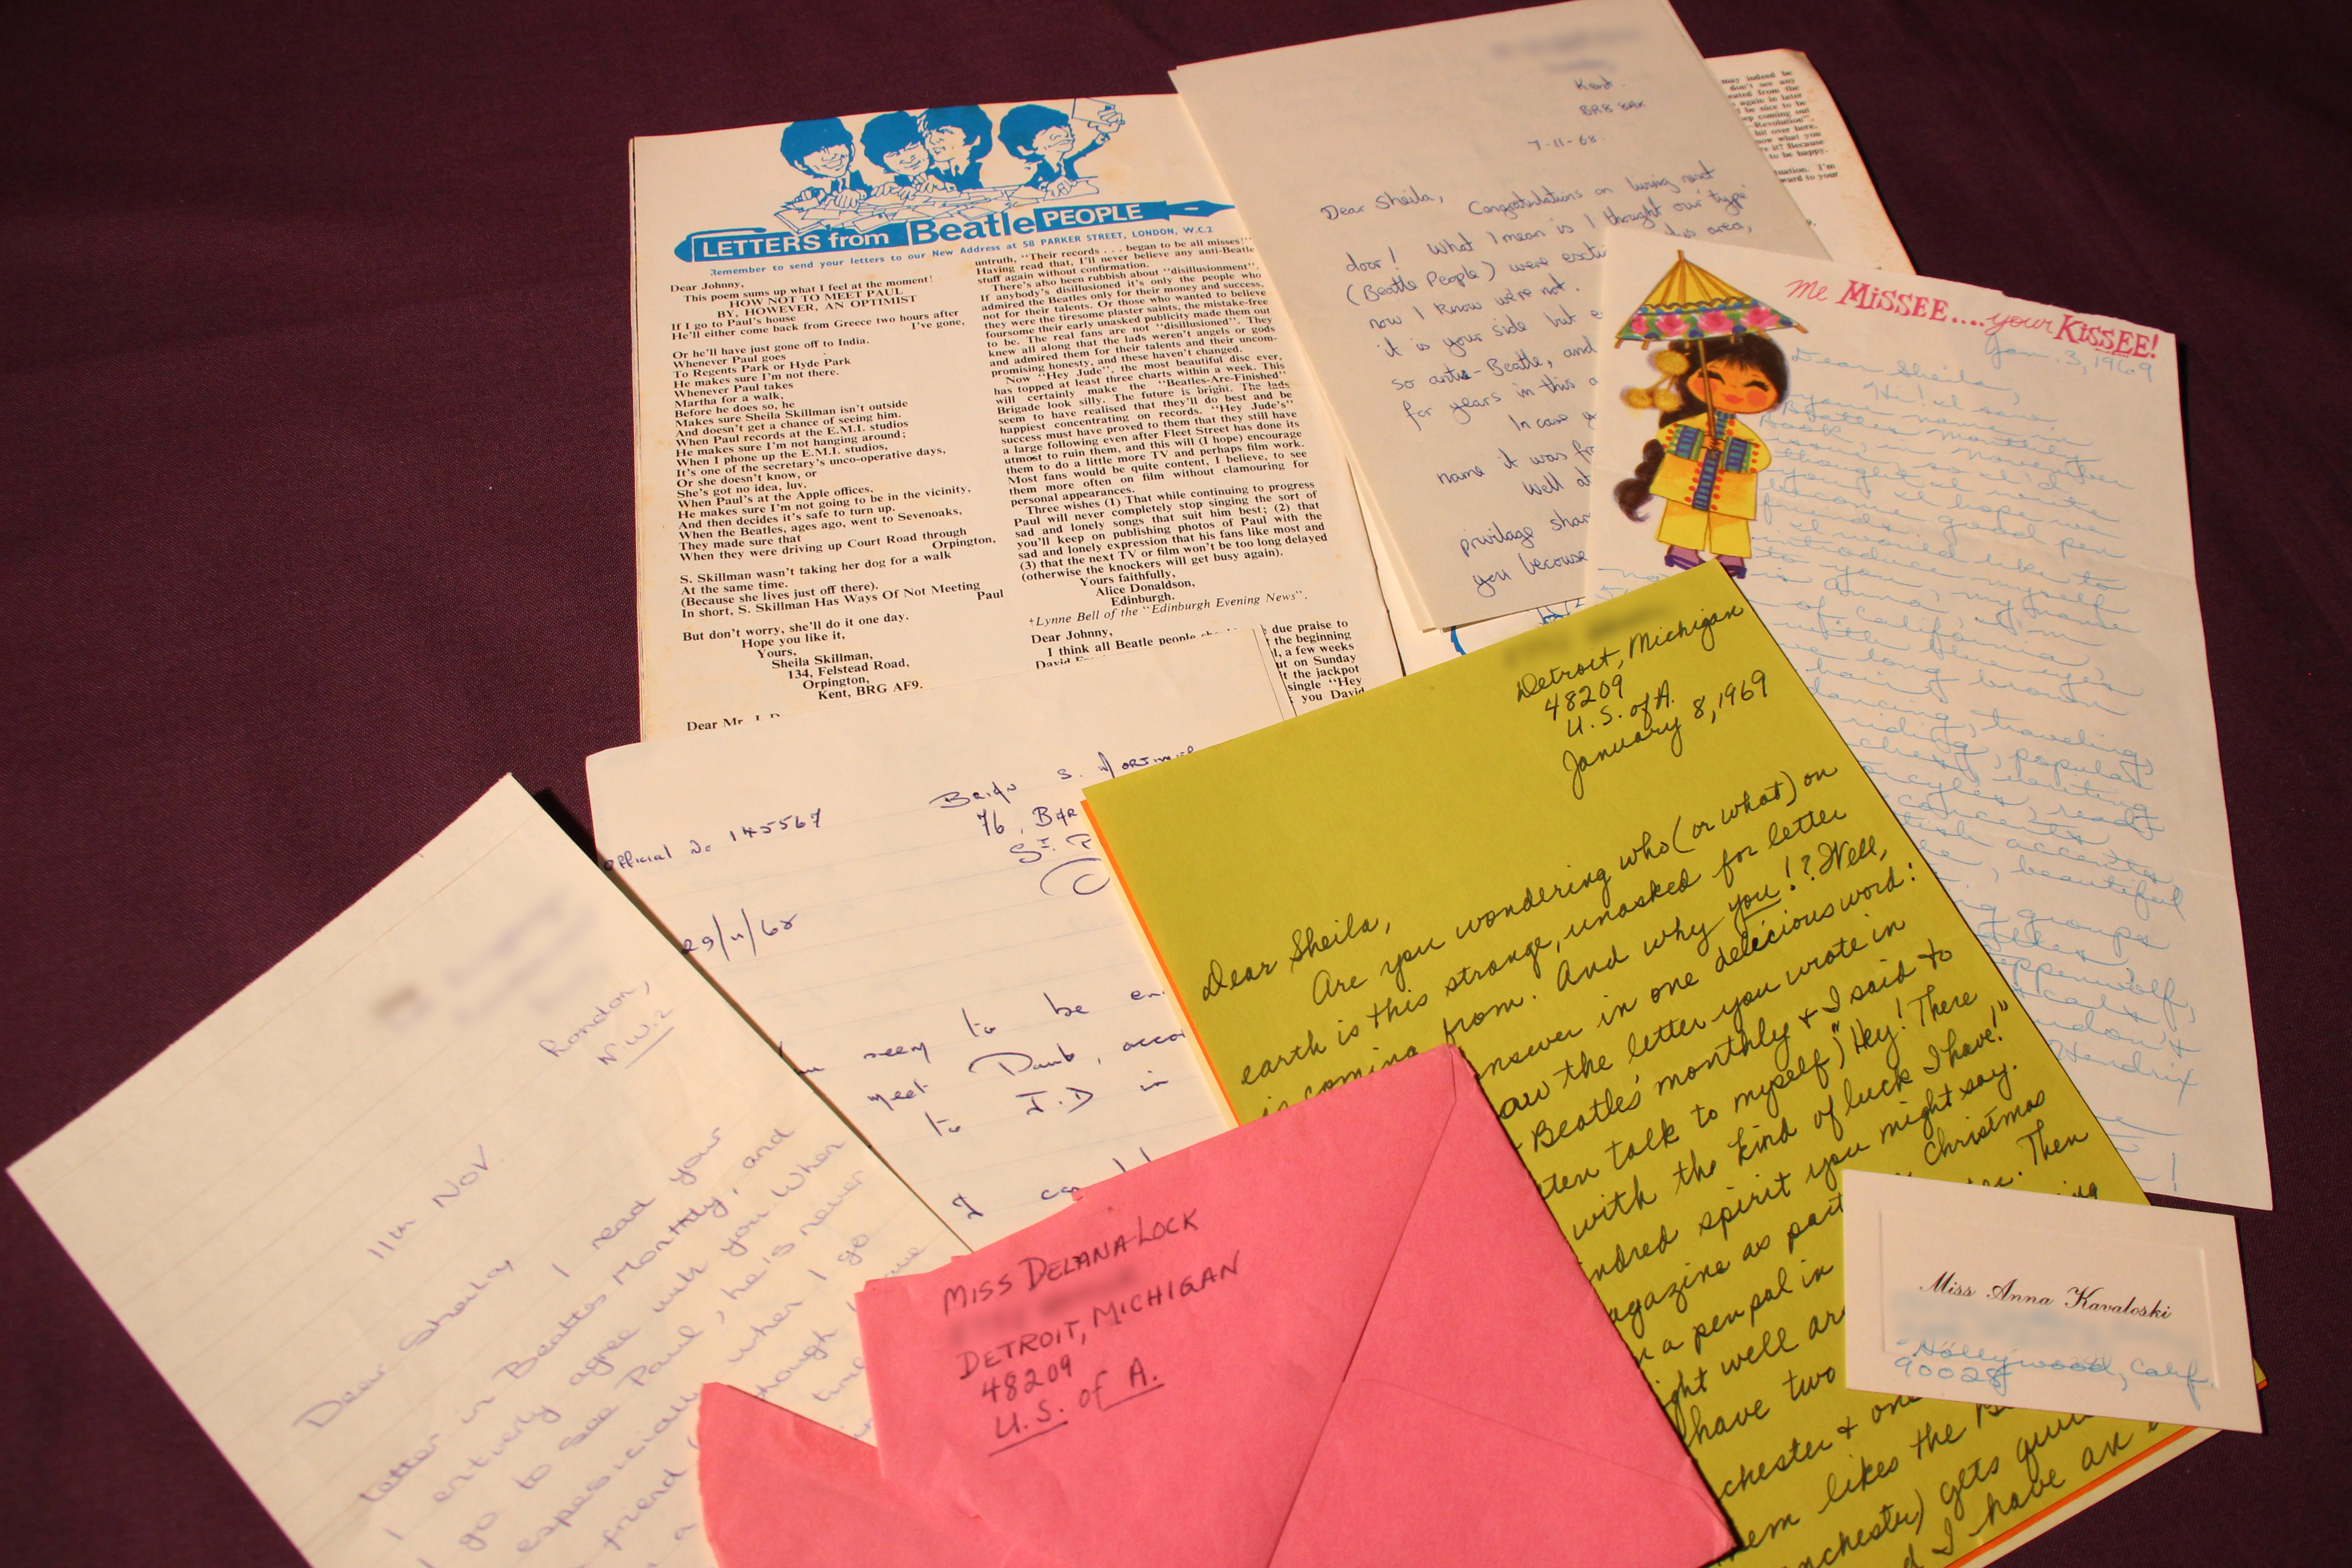 A selection of letters from Beatles fans responding to a poem by SC Skillman printed in Beatles Monthly magazine no. 64